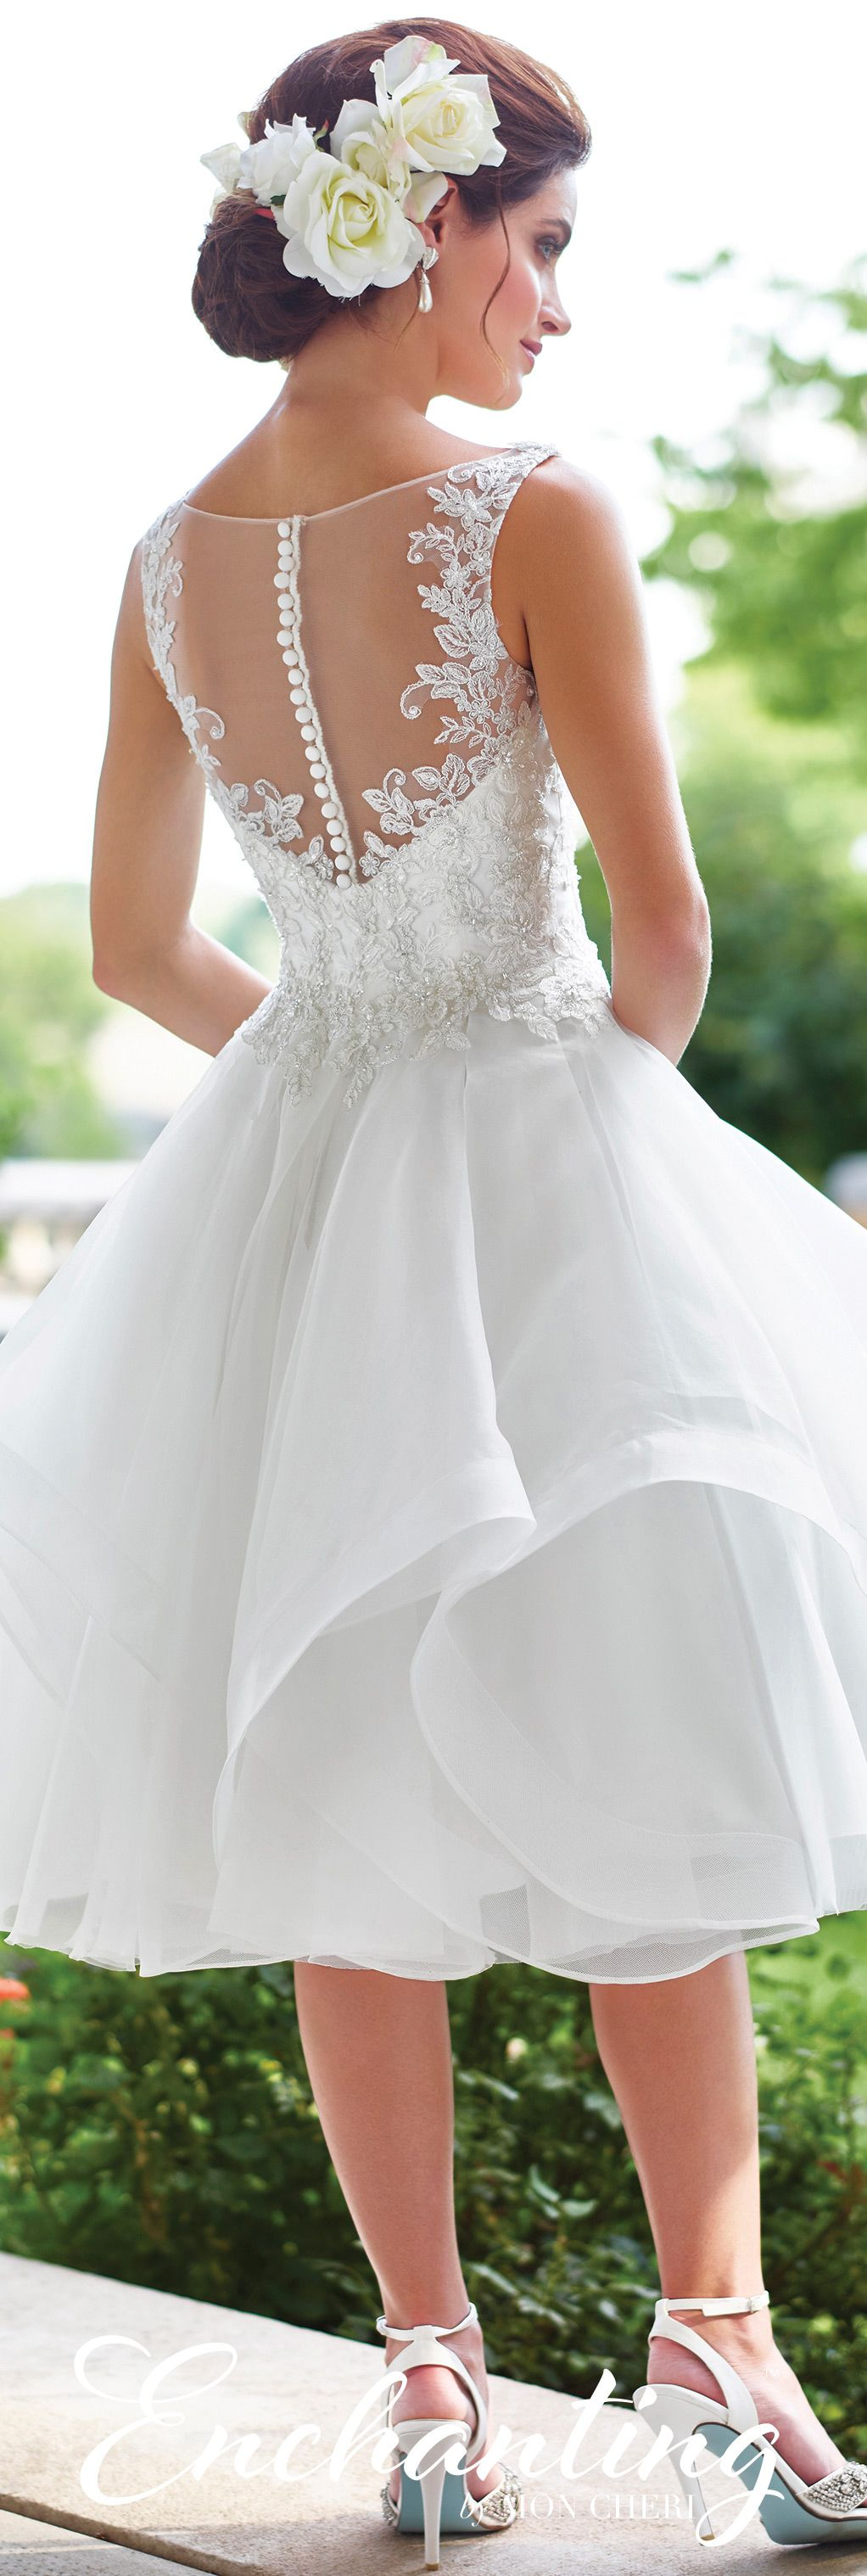 Tulle Knee Length Wedding Dress 117181 Enchanting By Mon Cheri